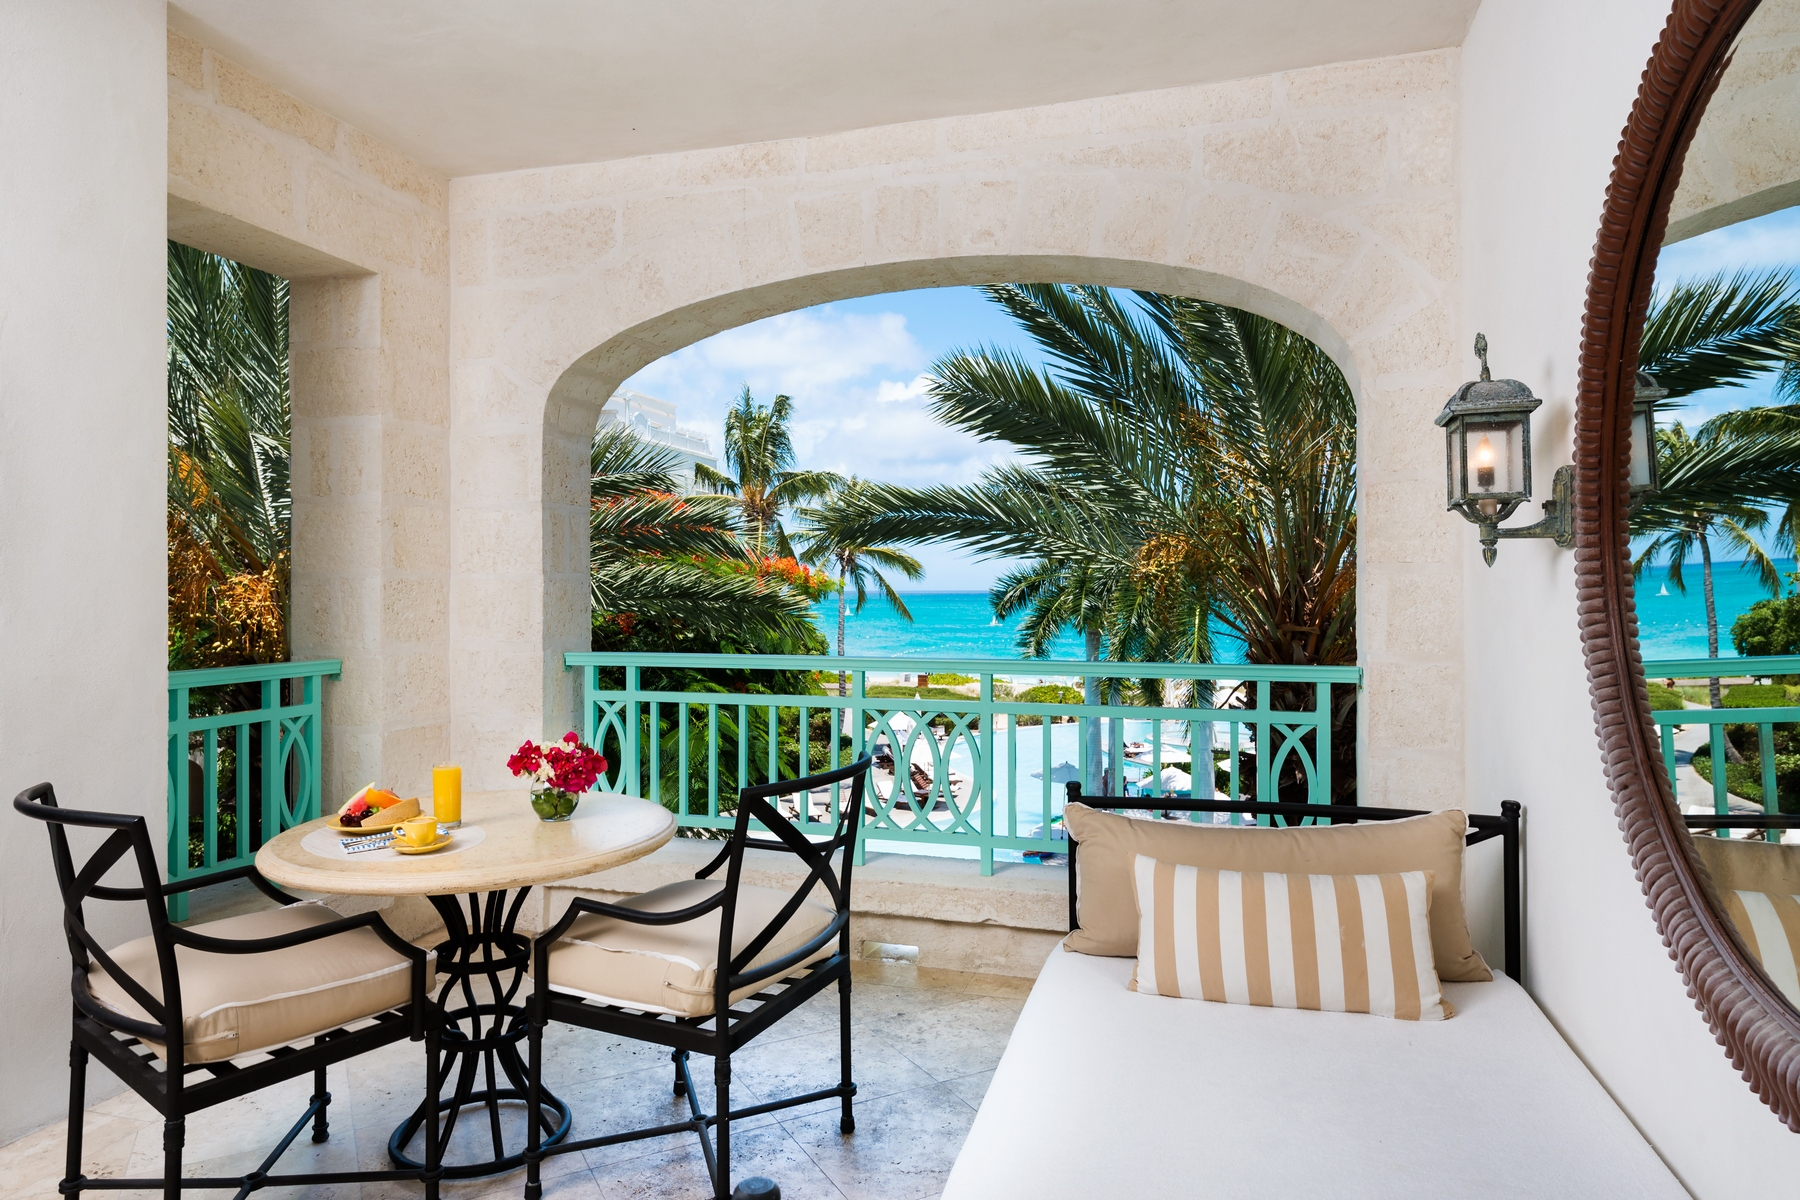 Condominium for Sale at The Palms Resort - Suite 3306/3307 The Regent Palms, Grace Bay, Providenciales Turks And Caicos Islands